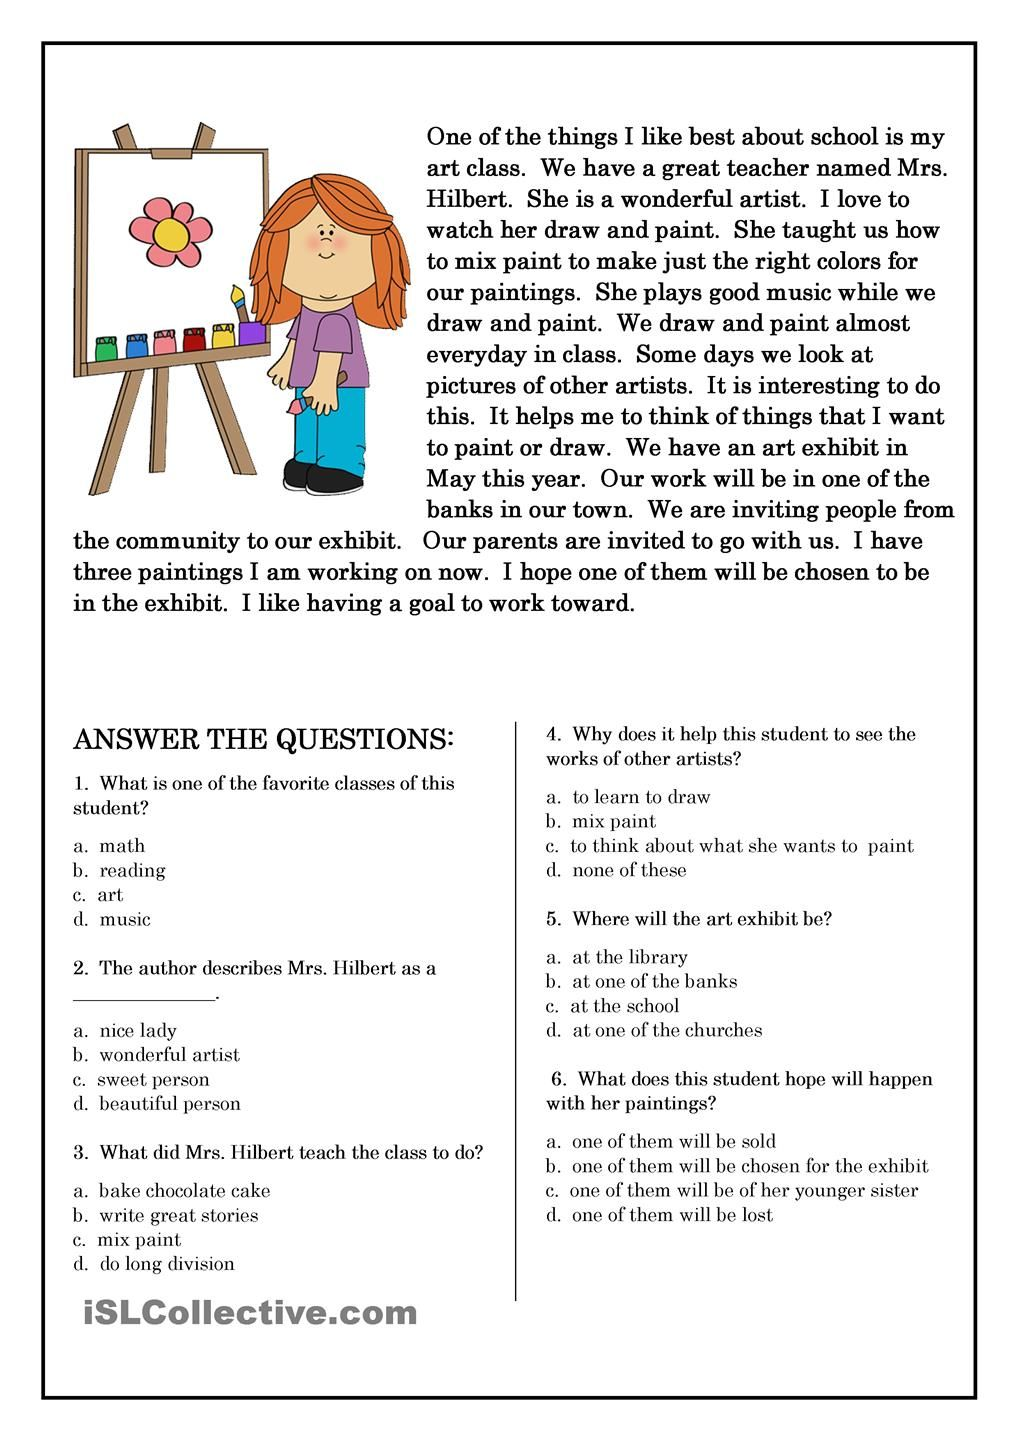 Folktale Comprehension Worksheets - Scalien